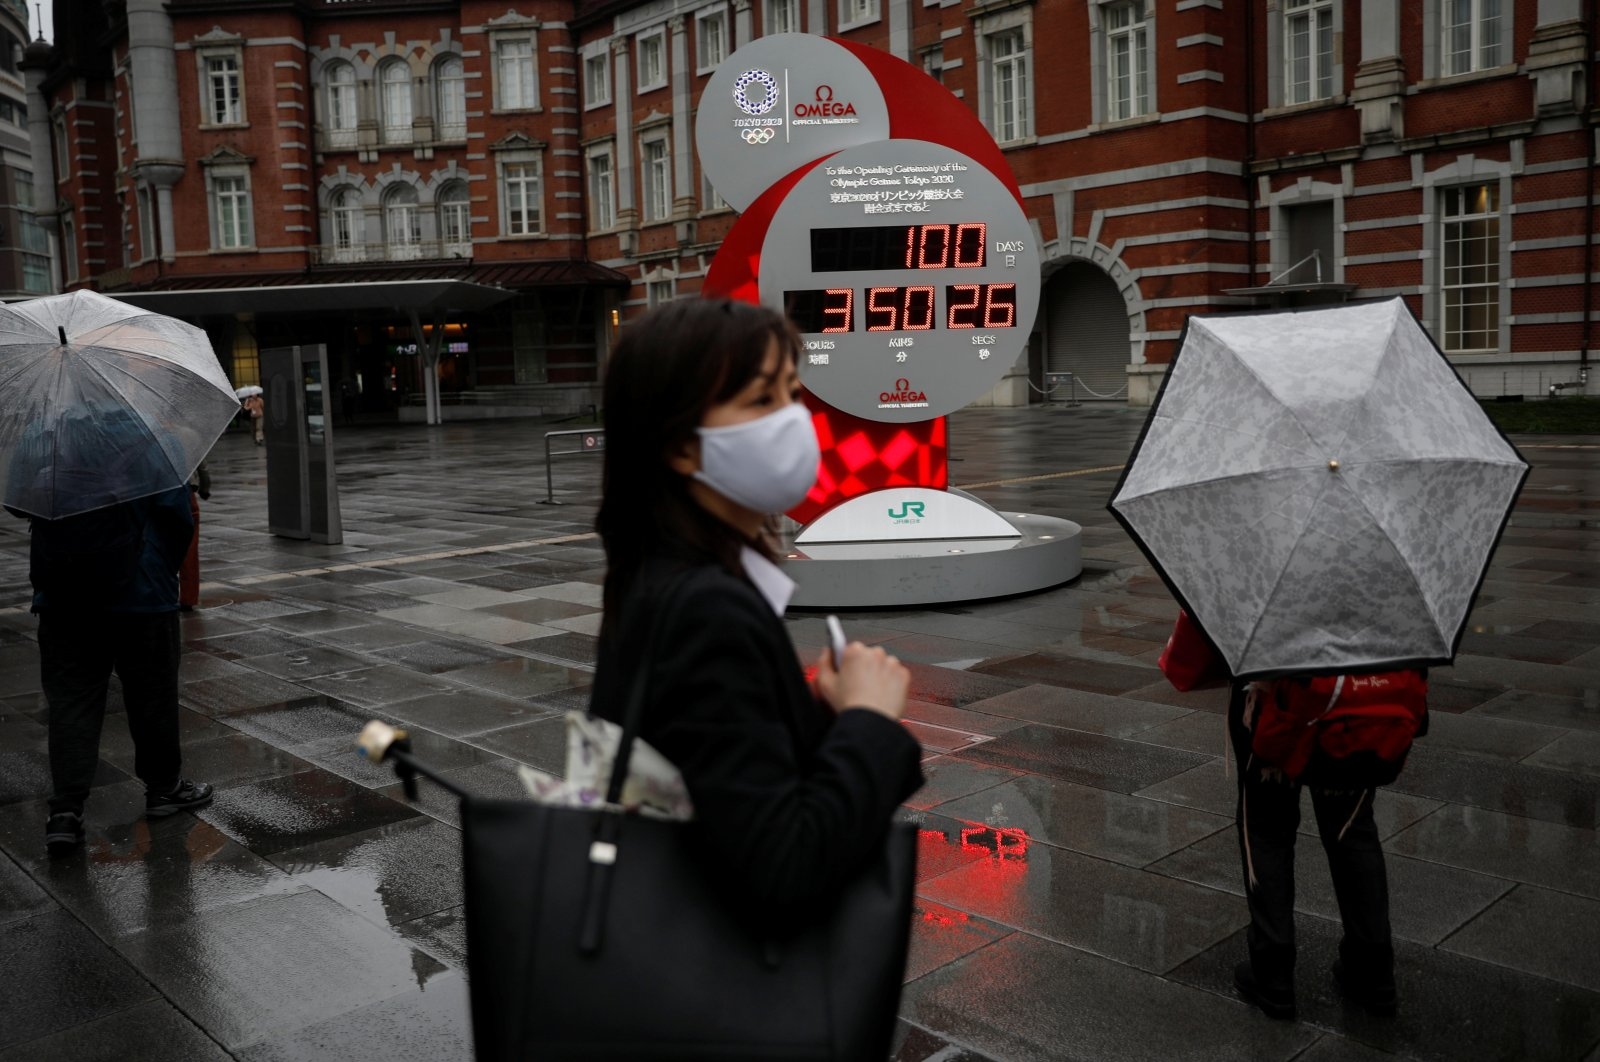 A woman wearing a protective face mask walks in front of a countdown clock showing that 100 days are left until the Tokyo 2020 Olympic Games that have been postponed to 2021 due to the COVID-19 pandemic, Tokyo, Japan, April 14, 2021. (Reuters Photo)